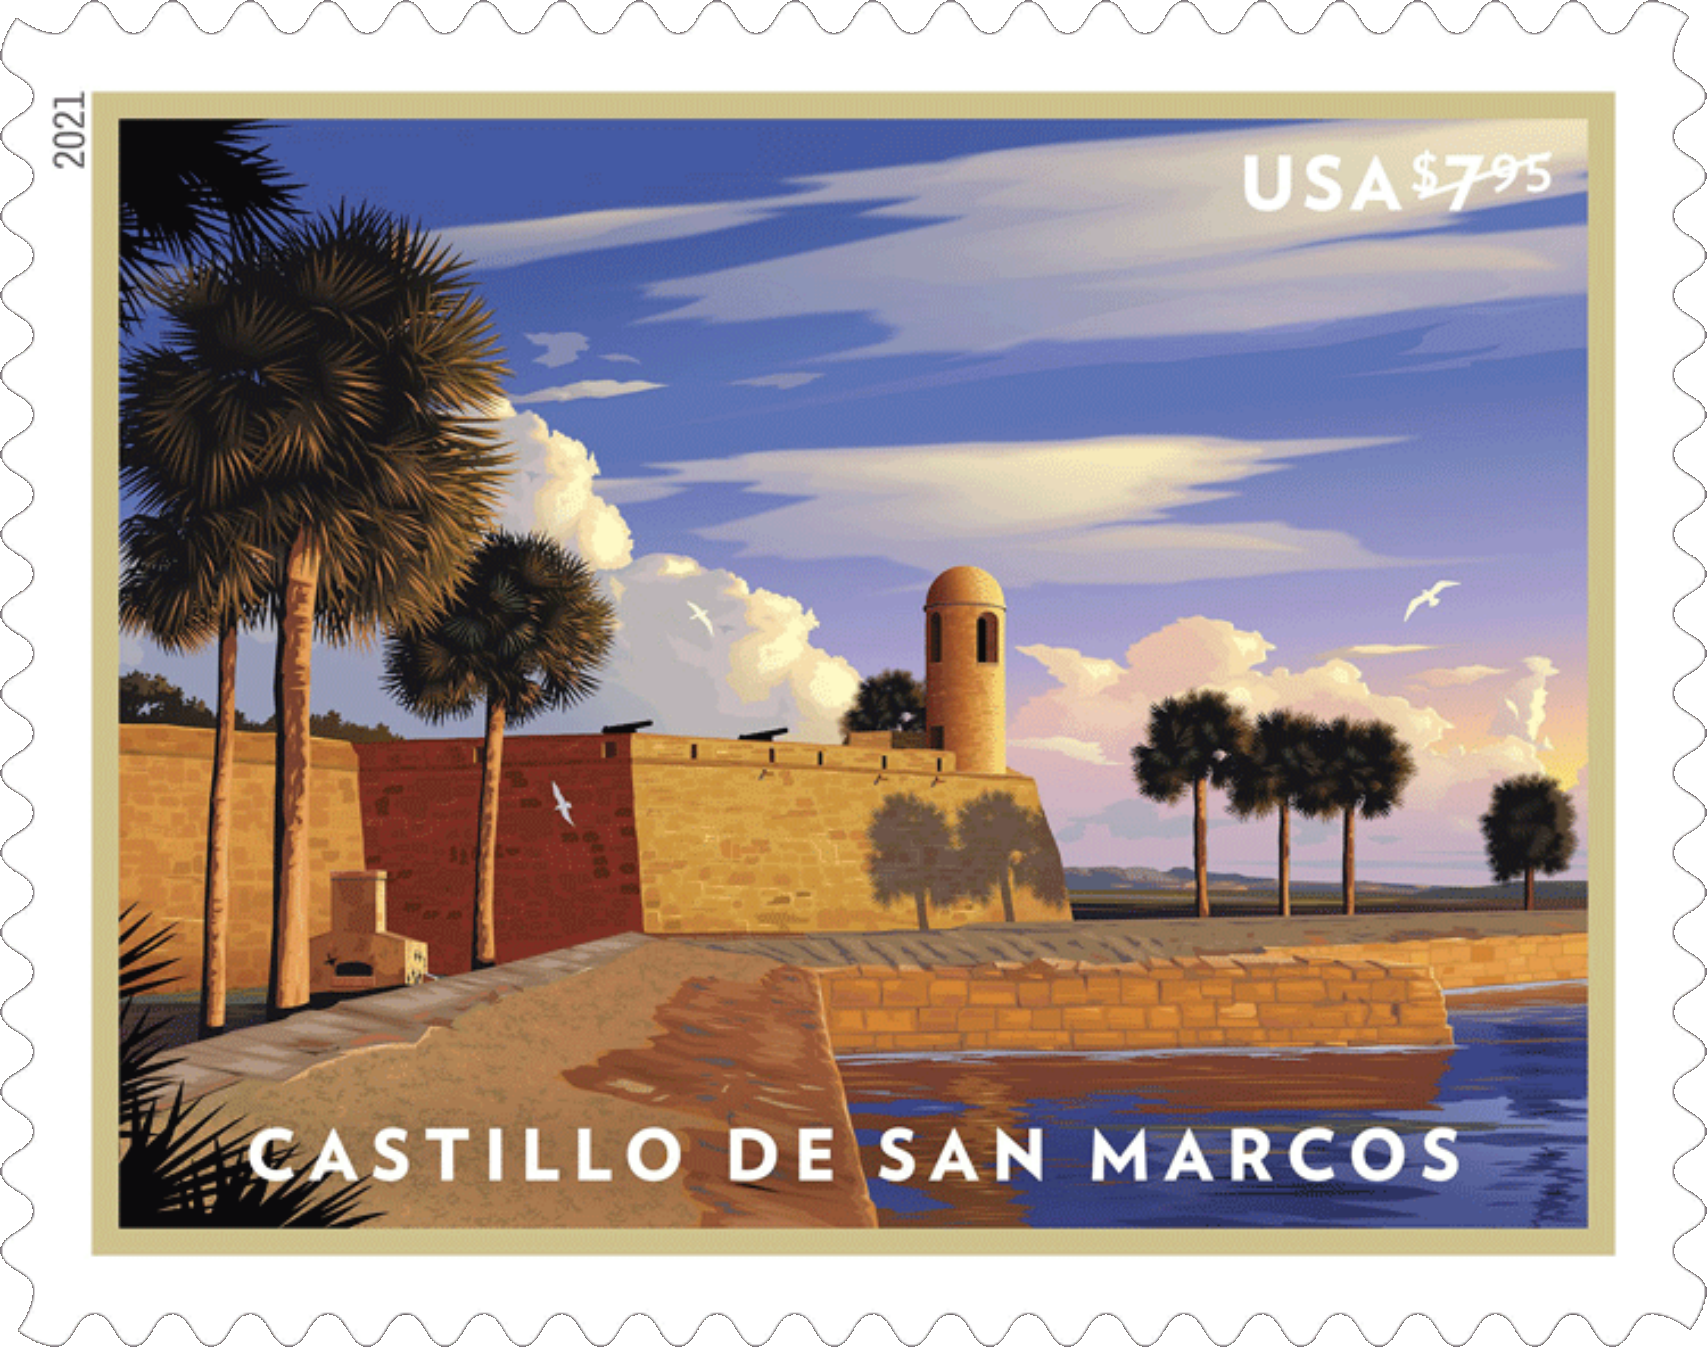 United States: Castillo de San Marcos, 24 January 2021